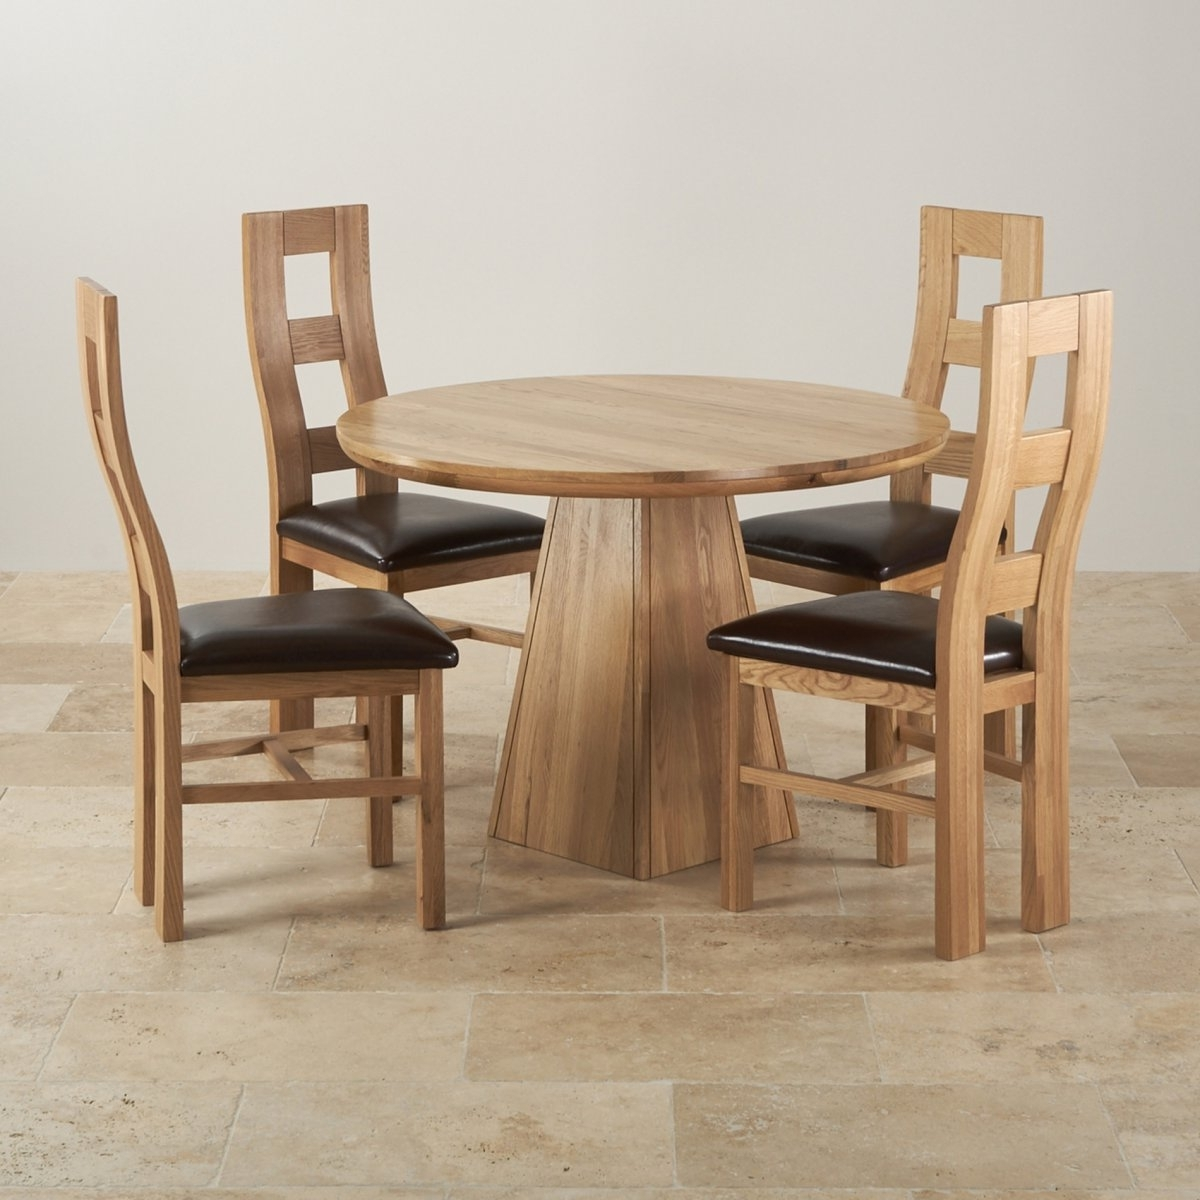 Best And Newest Provence Solid Oak Dining Set 3Ft 7Quot; Table With 4 Chairs, Dining Inside Oak Round Dining Tables And Chairs (View 17 of 25)